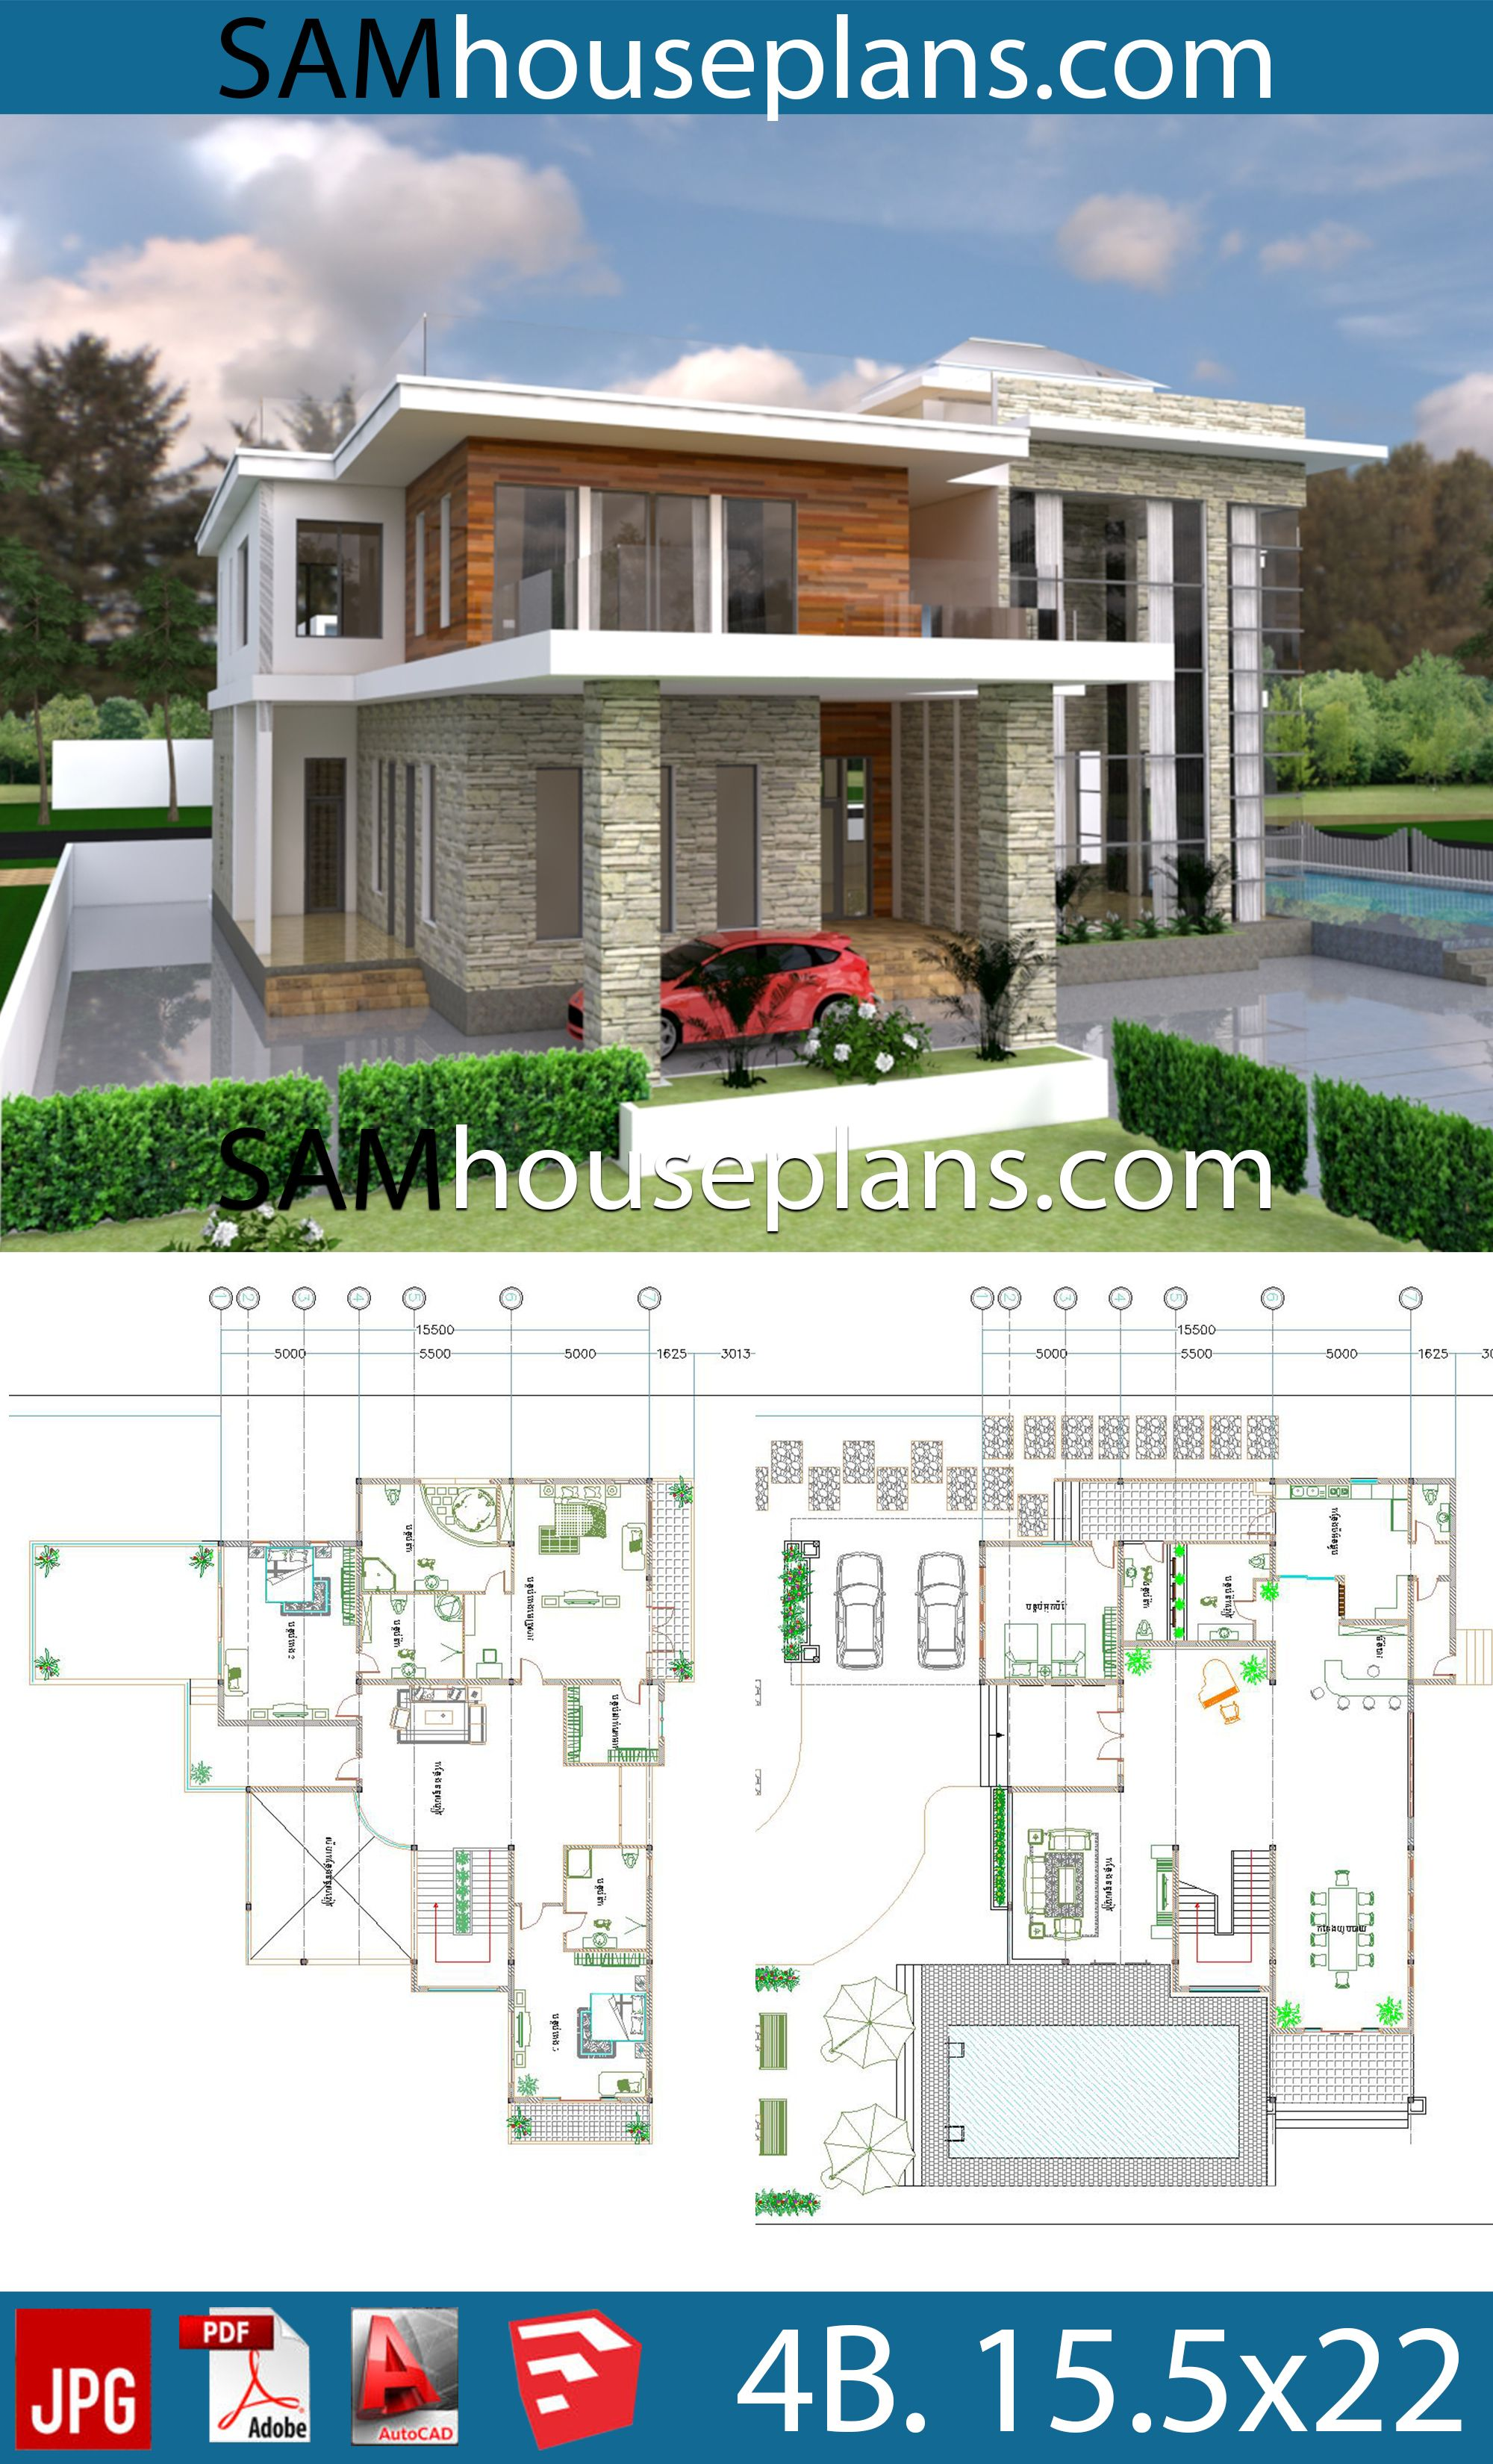 House Plans 15 5x22 With 4 Bedrooms House Plans Free Downloads House Plans My House Plans Modern House Plans